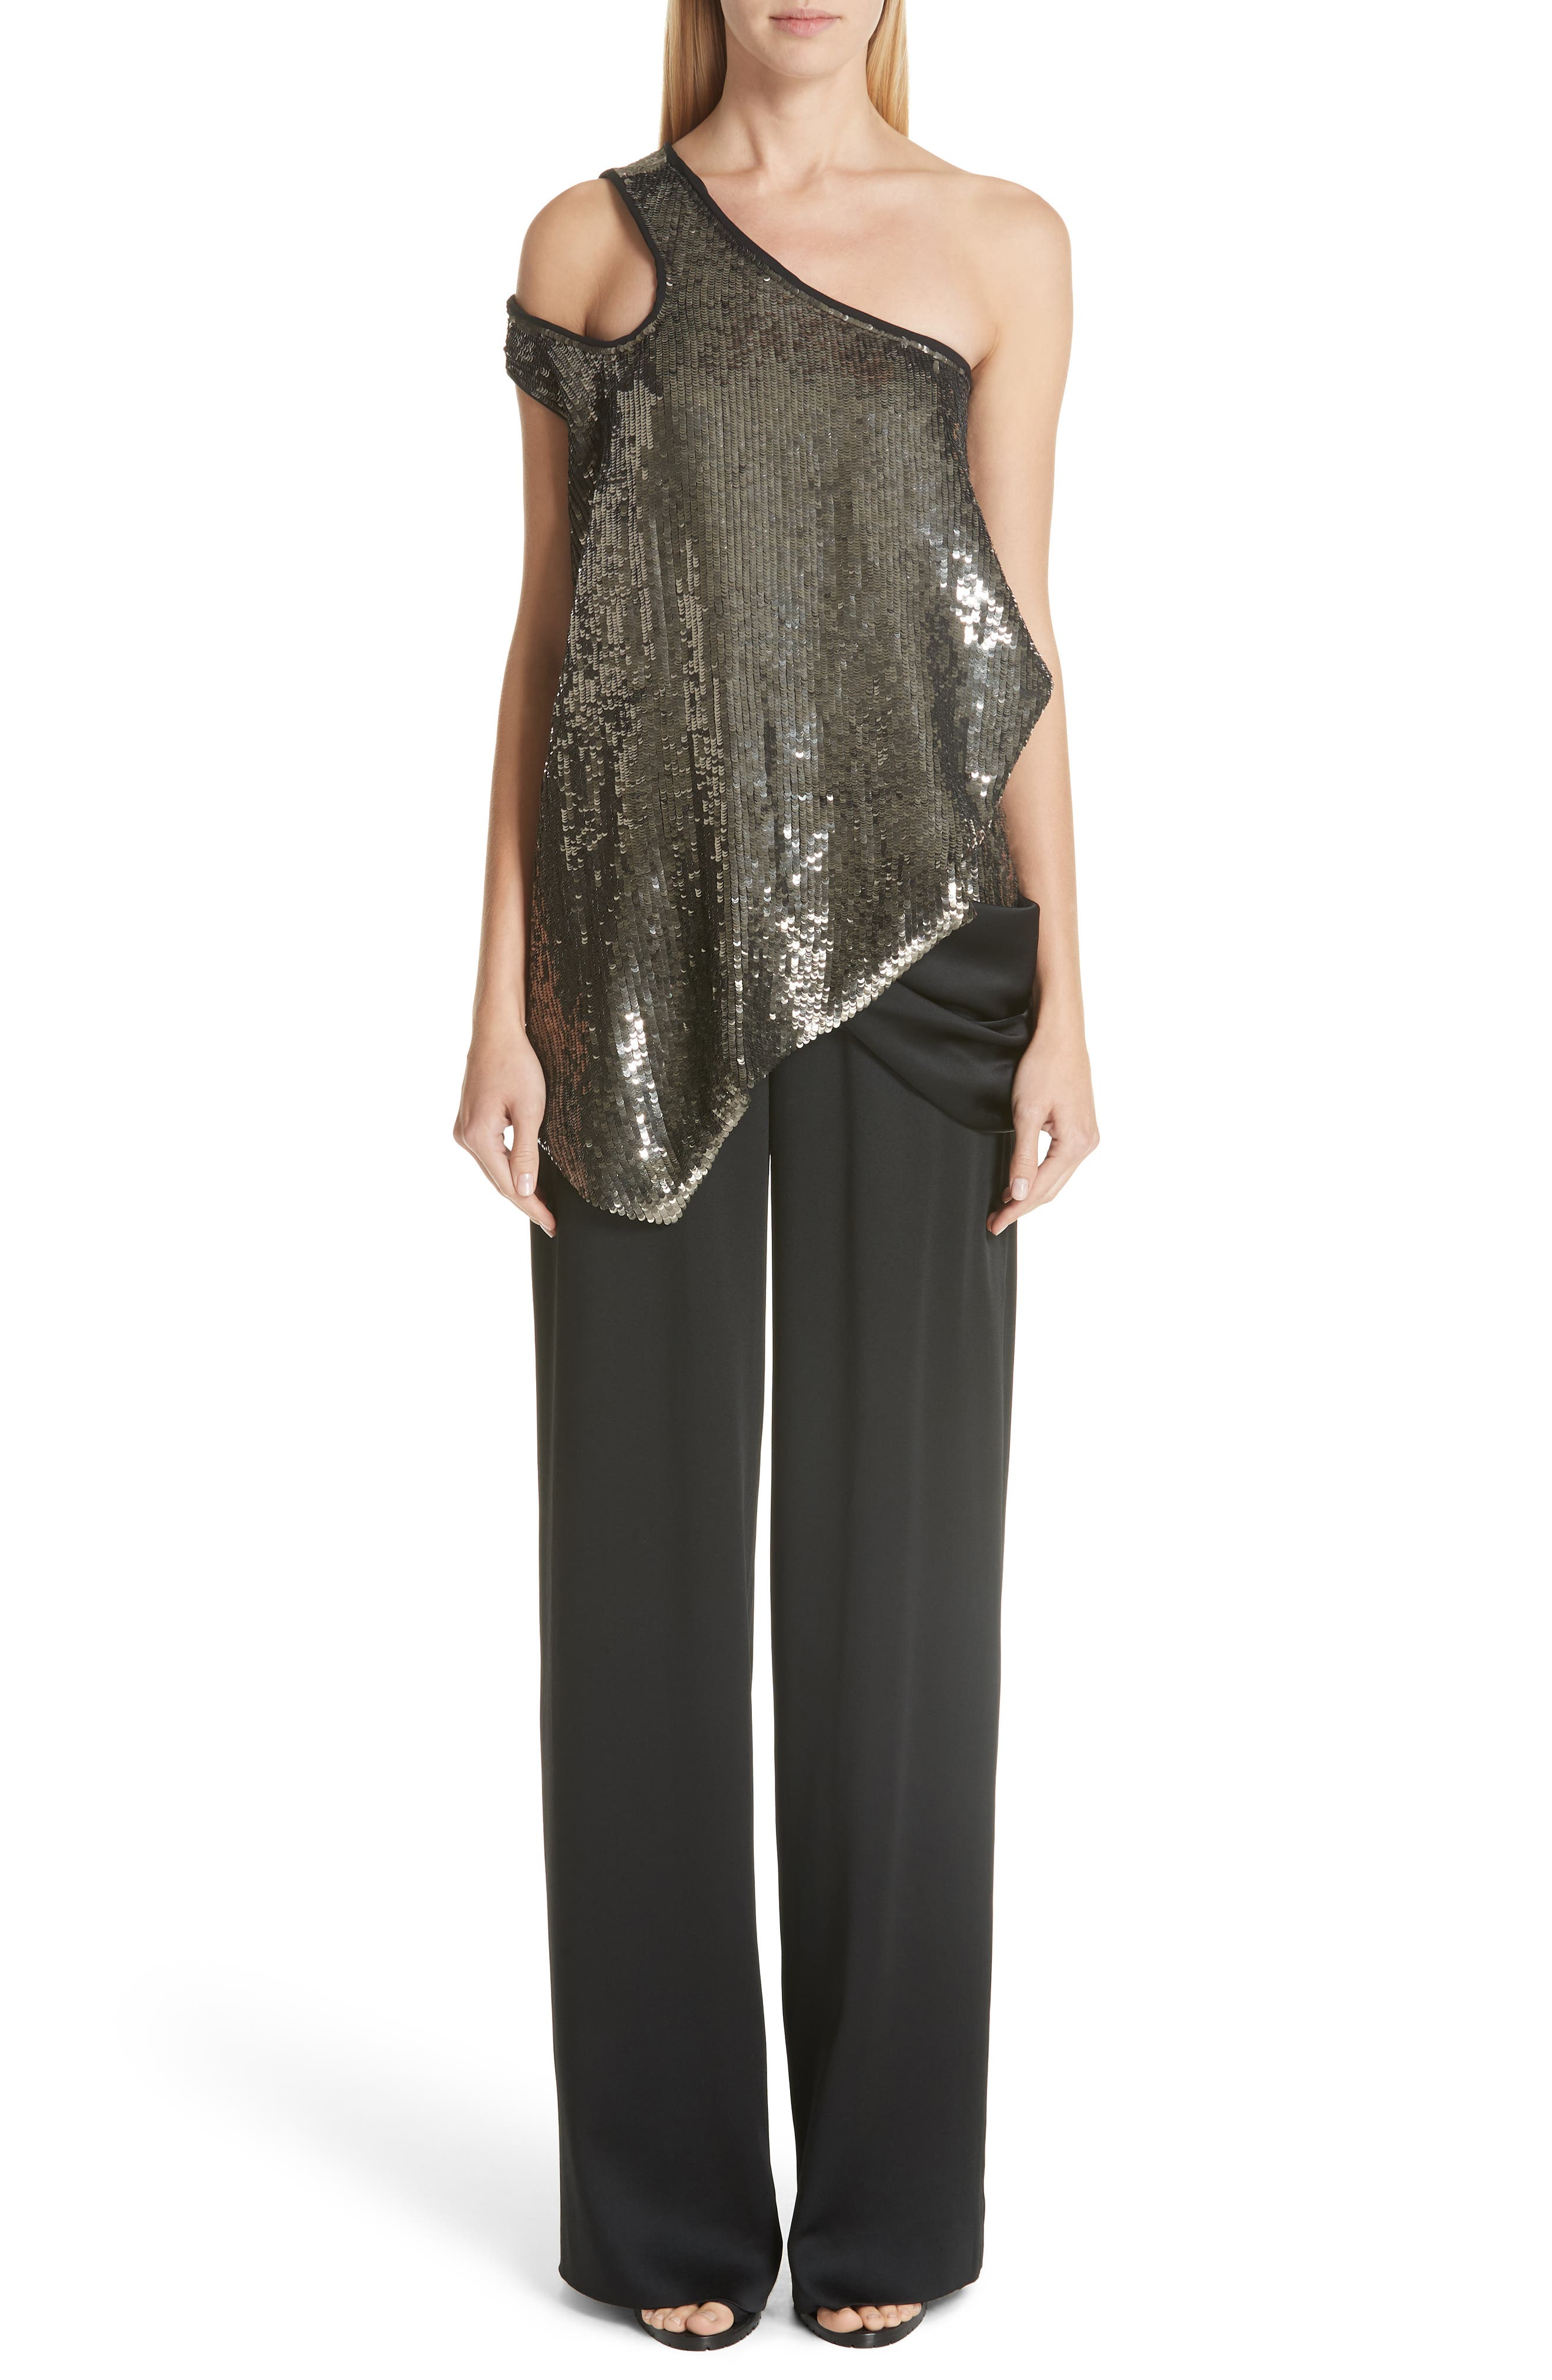 MONSE, Cutout Shoulder Sequin Tank, Alternate thumbnail 7, color, GUN METAL